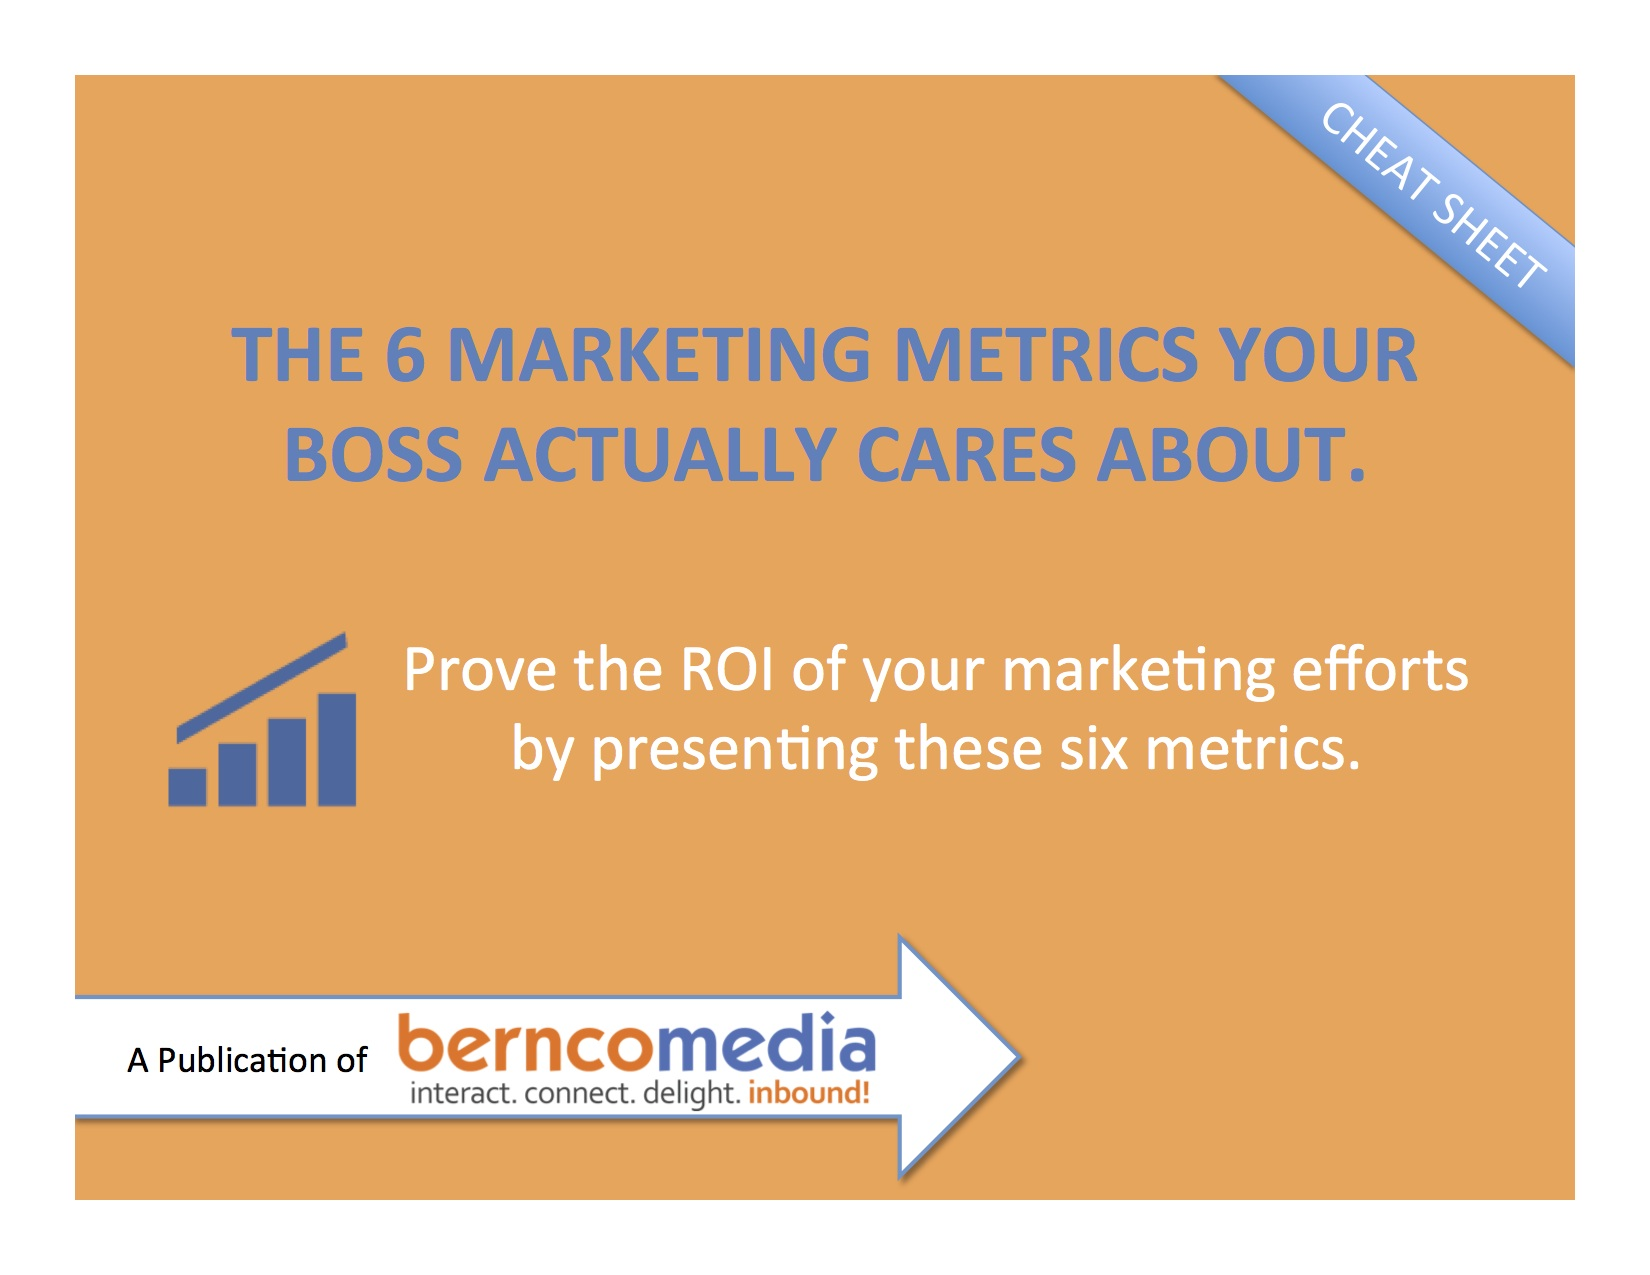 Bernco Media 6 Marketing Metrics Your Boss Cares About